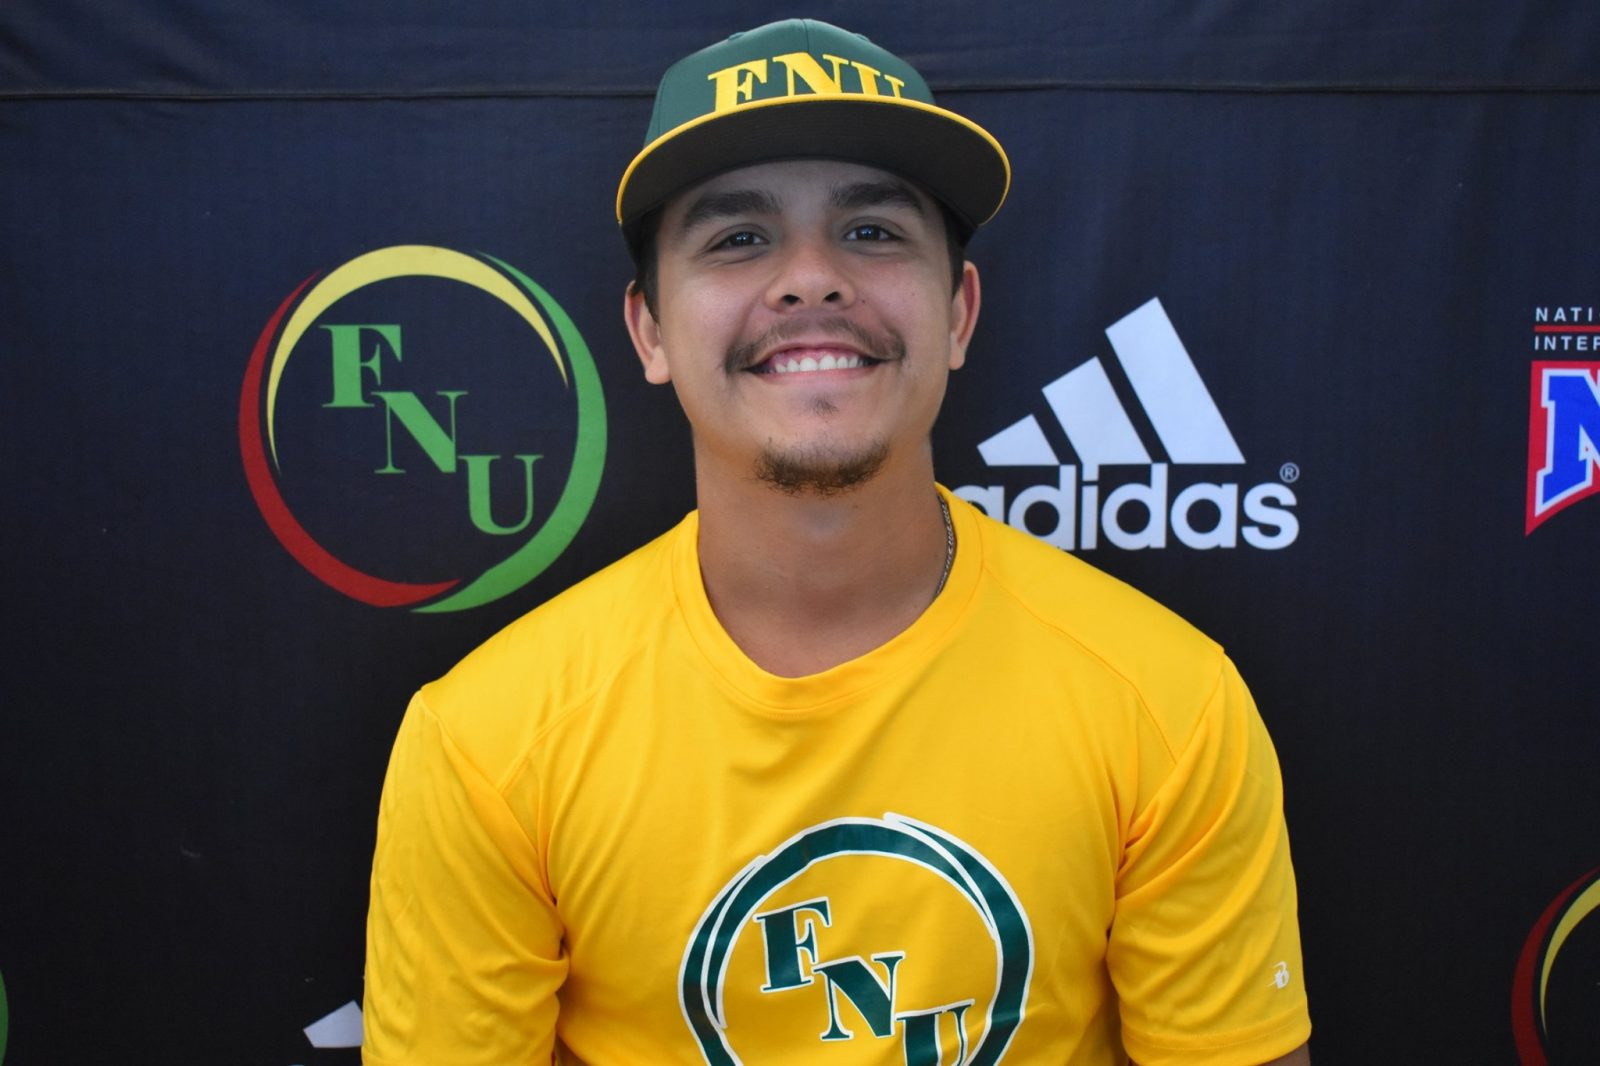 Juan Carlos Rodriguez baseball player